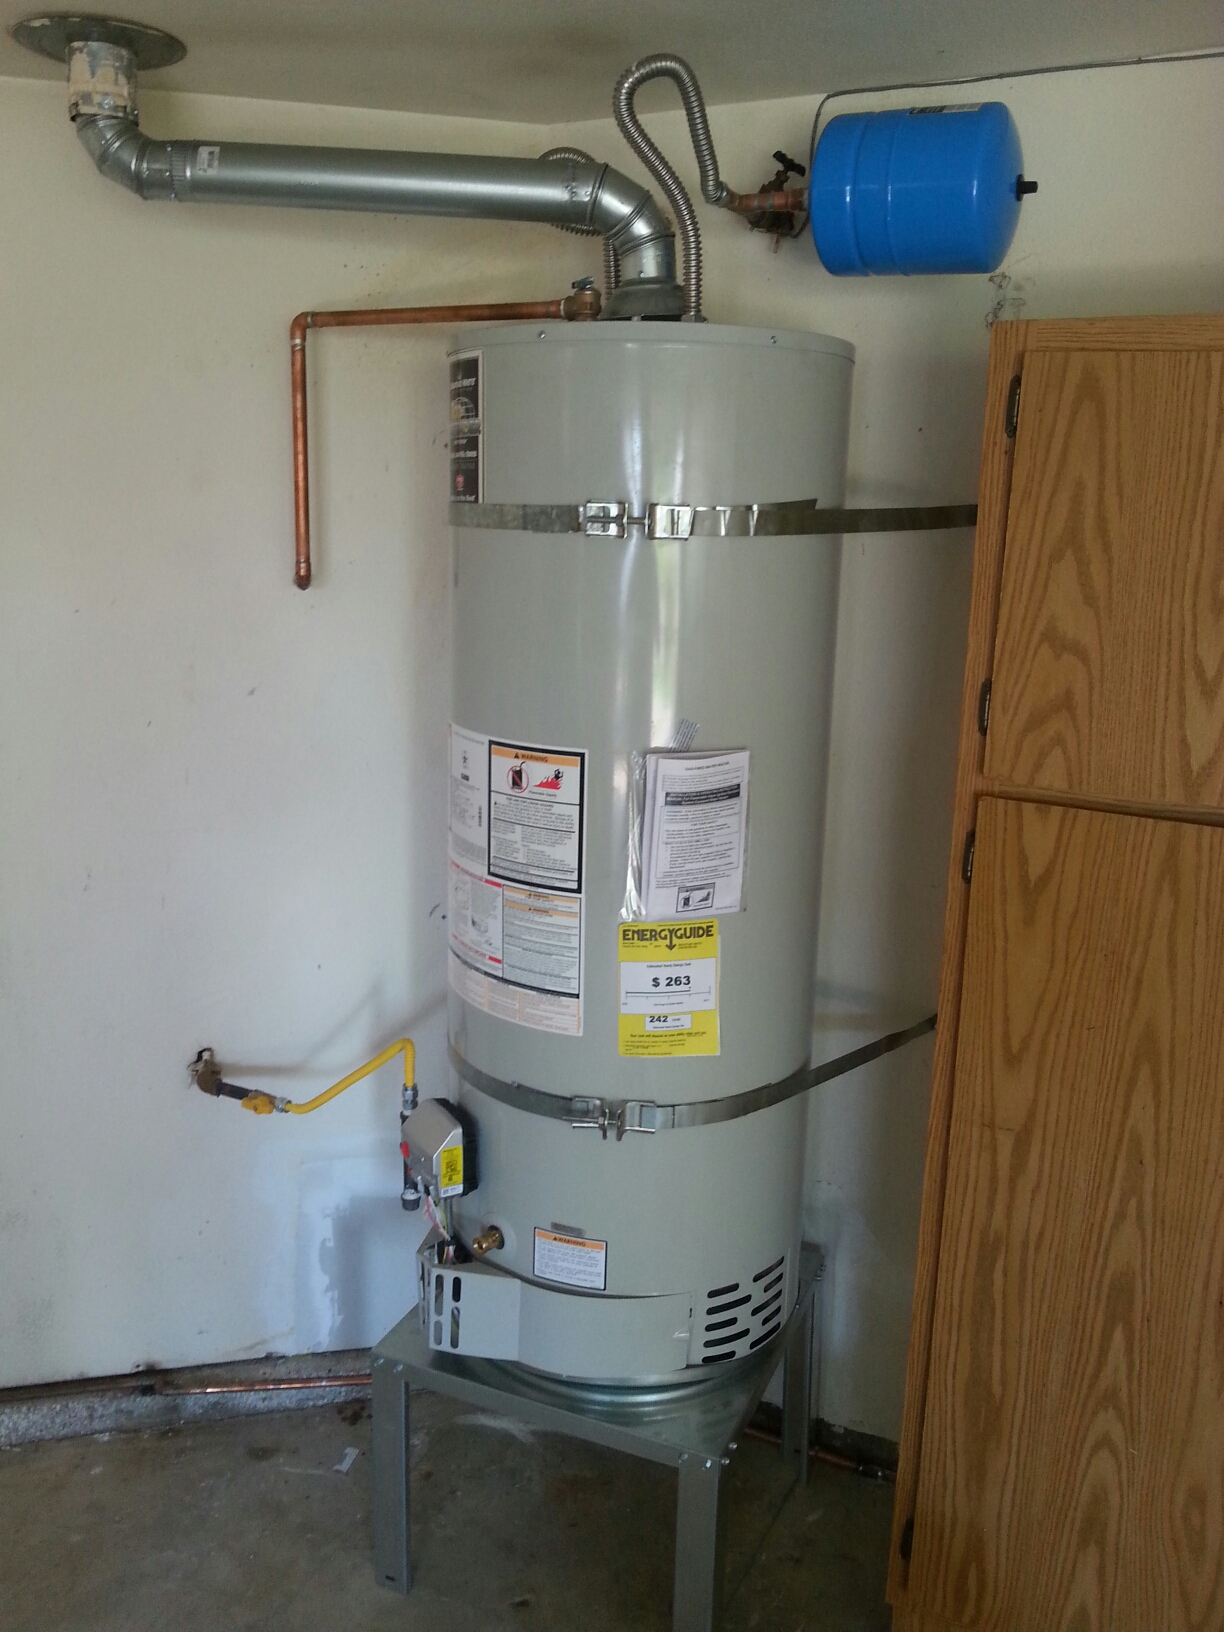 Antelope, CA - Antelope water heater replacement repair stand remove wet areas new lines gas lines is offline complete installation picture